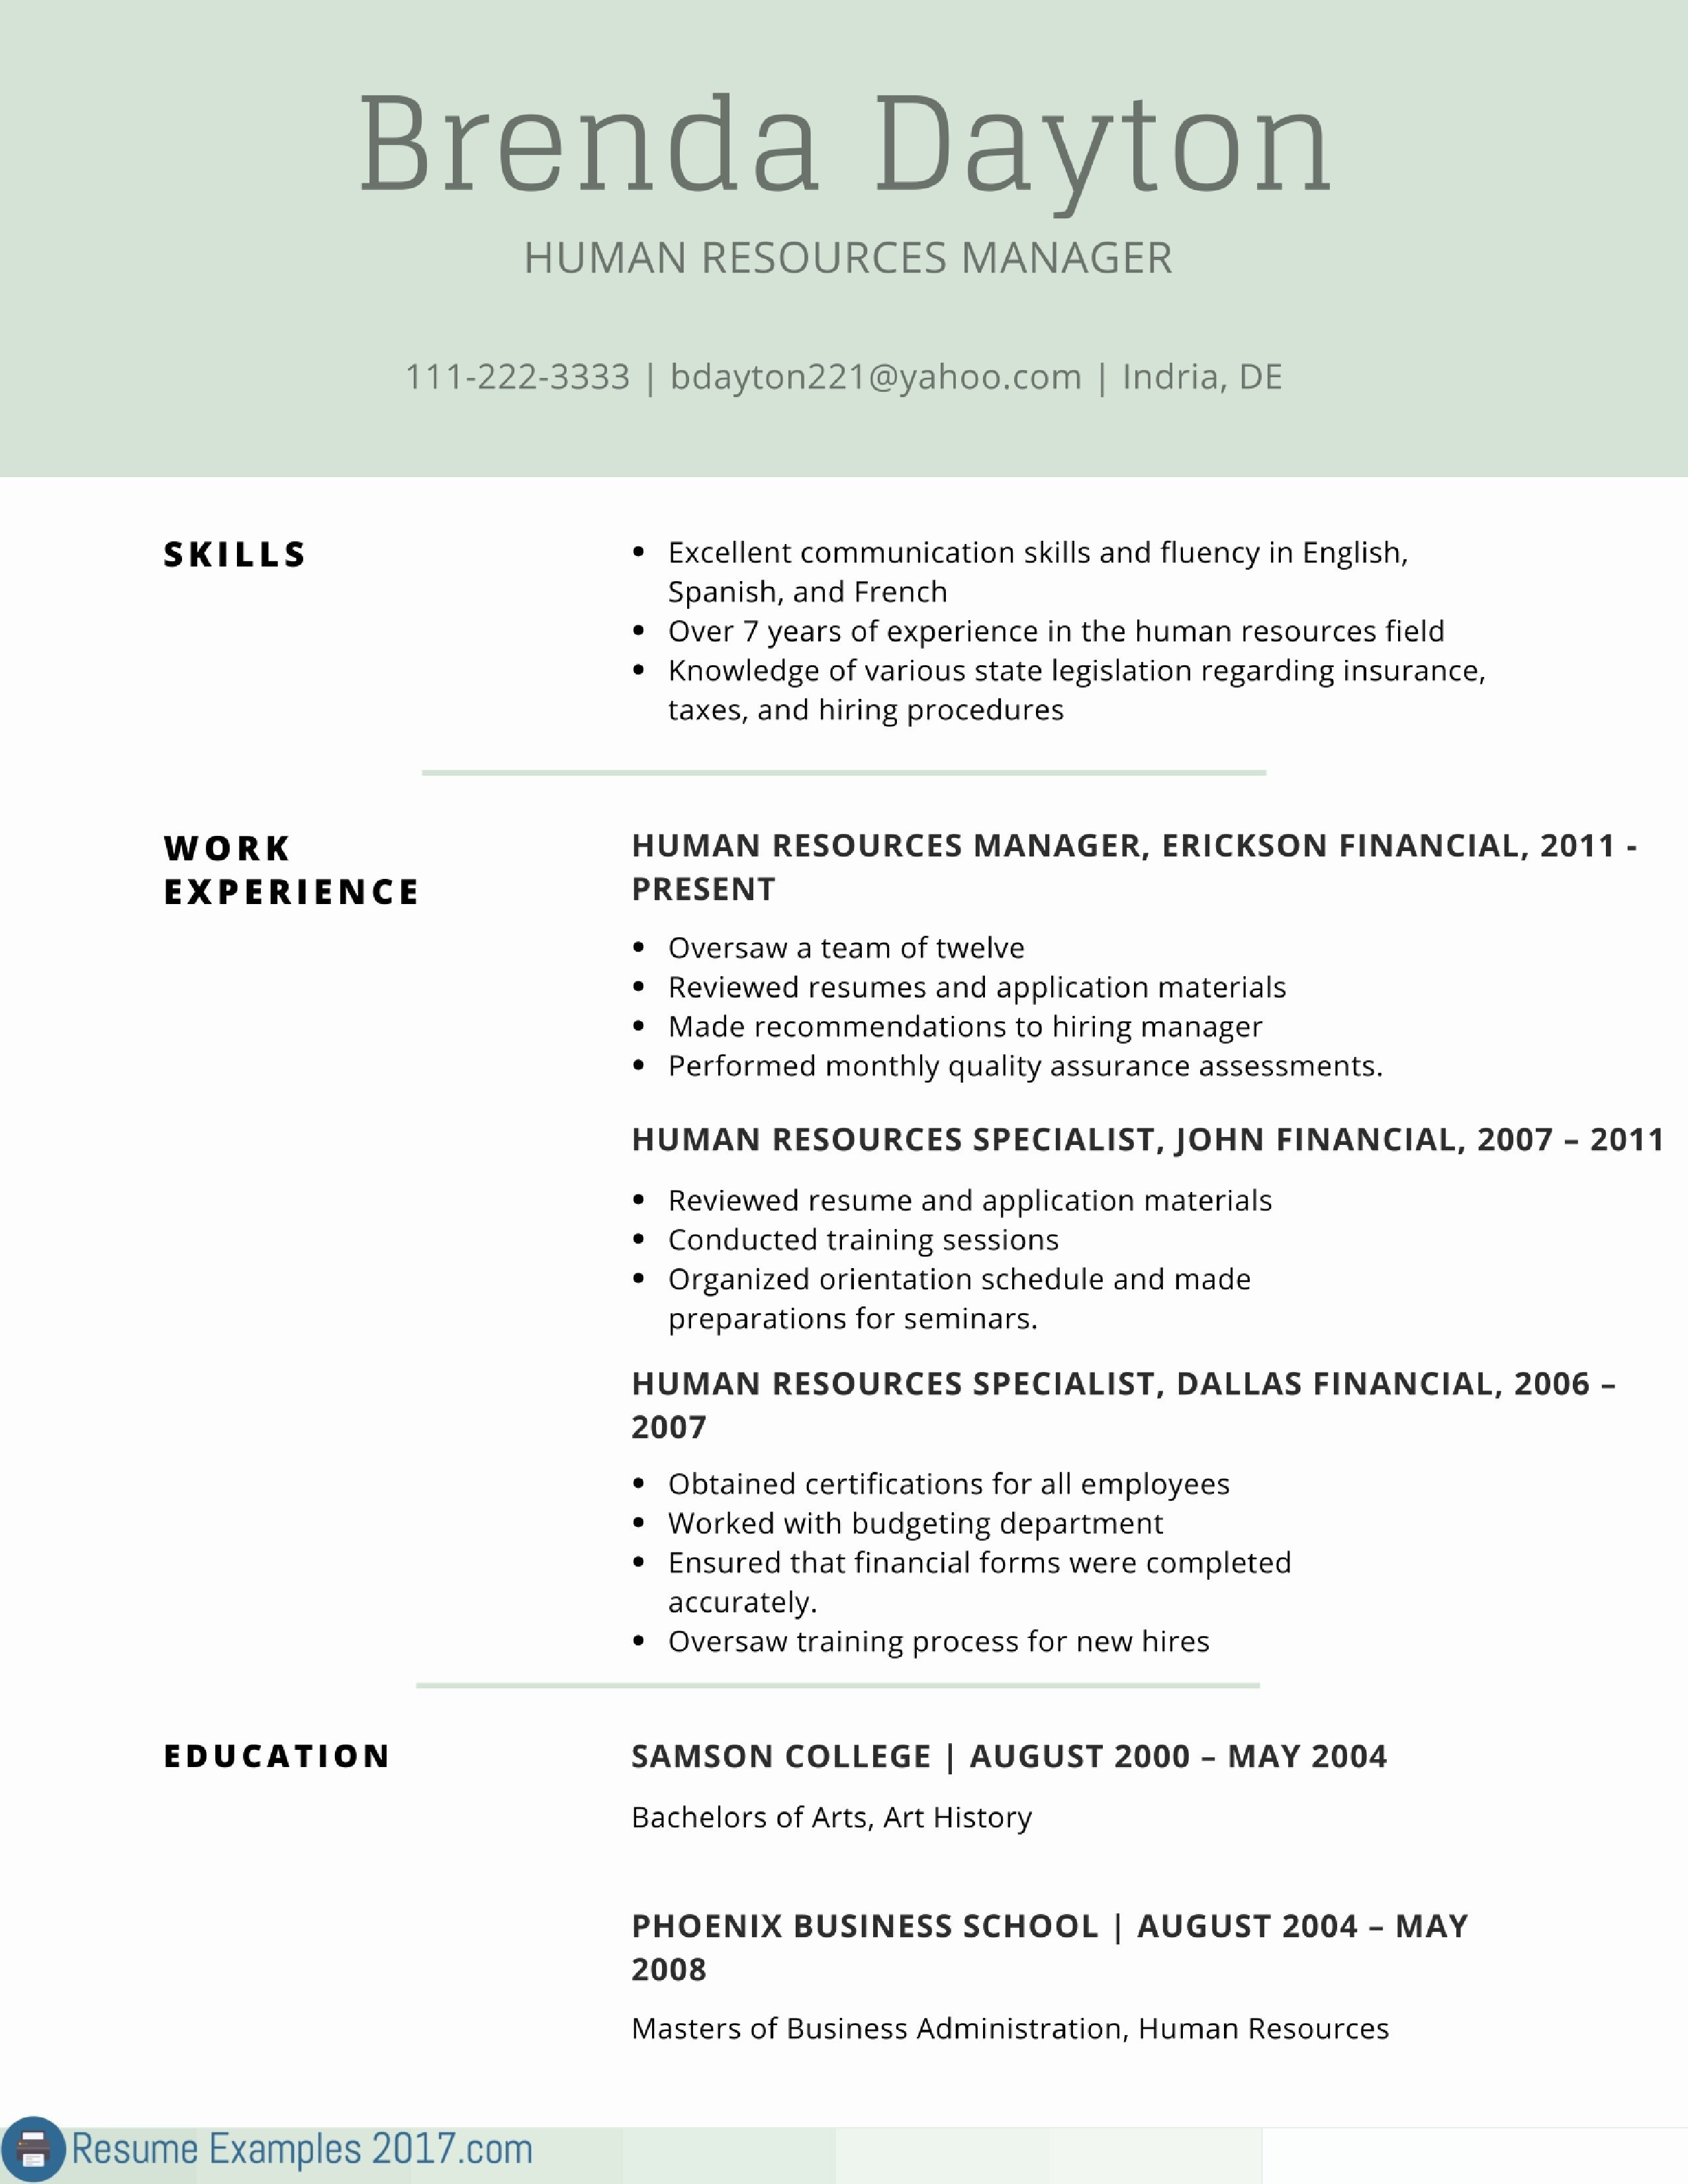 Income Tax Return Copy Elegant Copy A Resume Elegant Good Resume For Job Simple Fresh New Resume